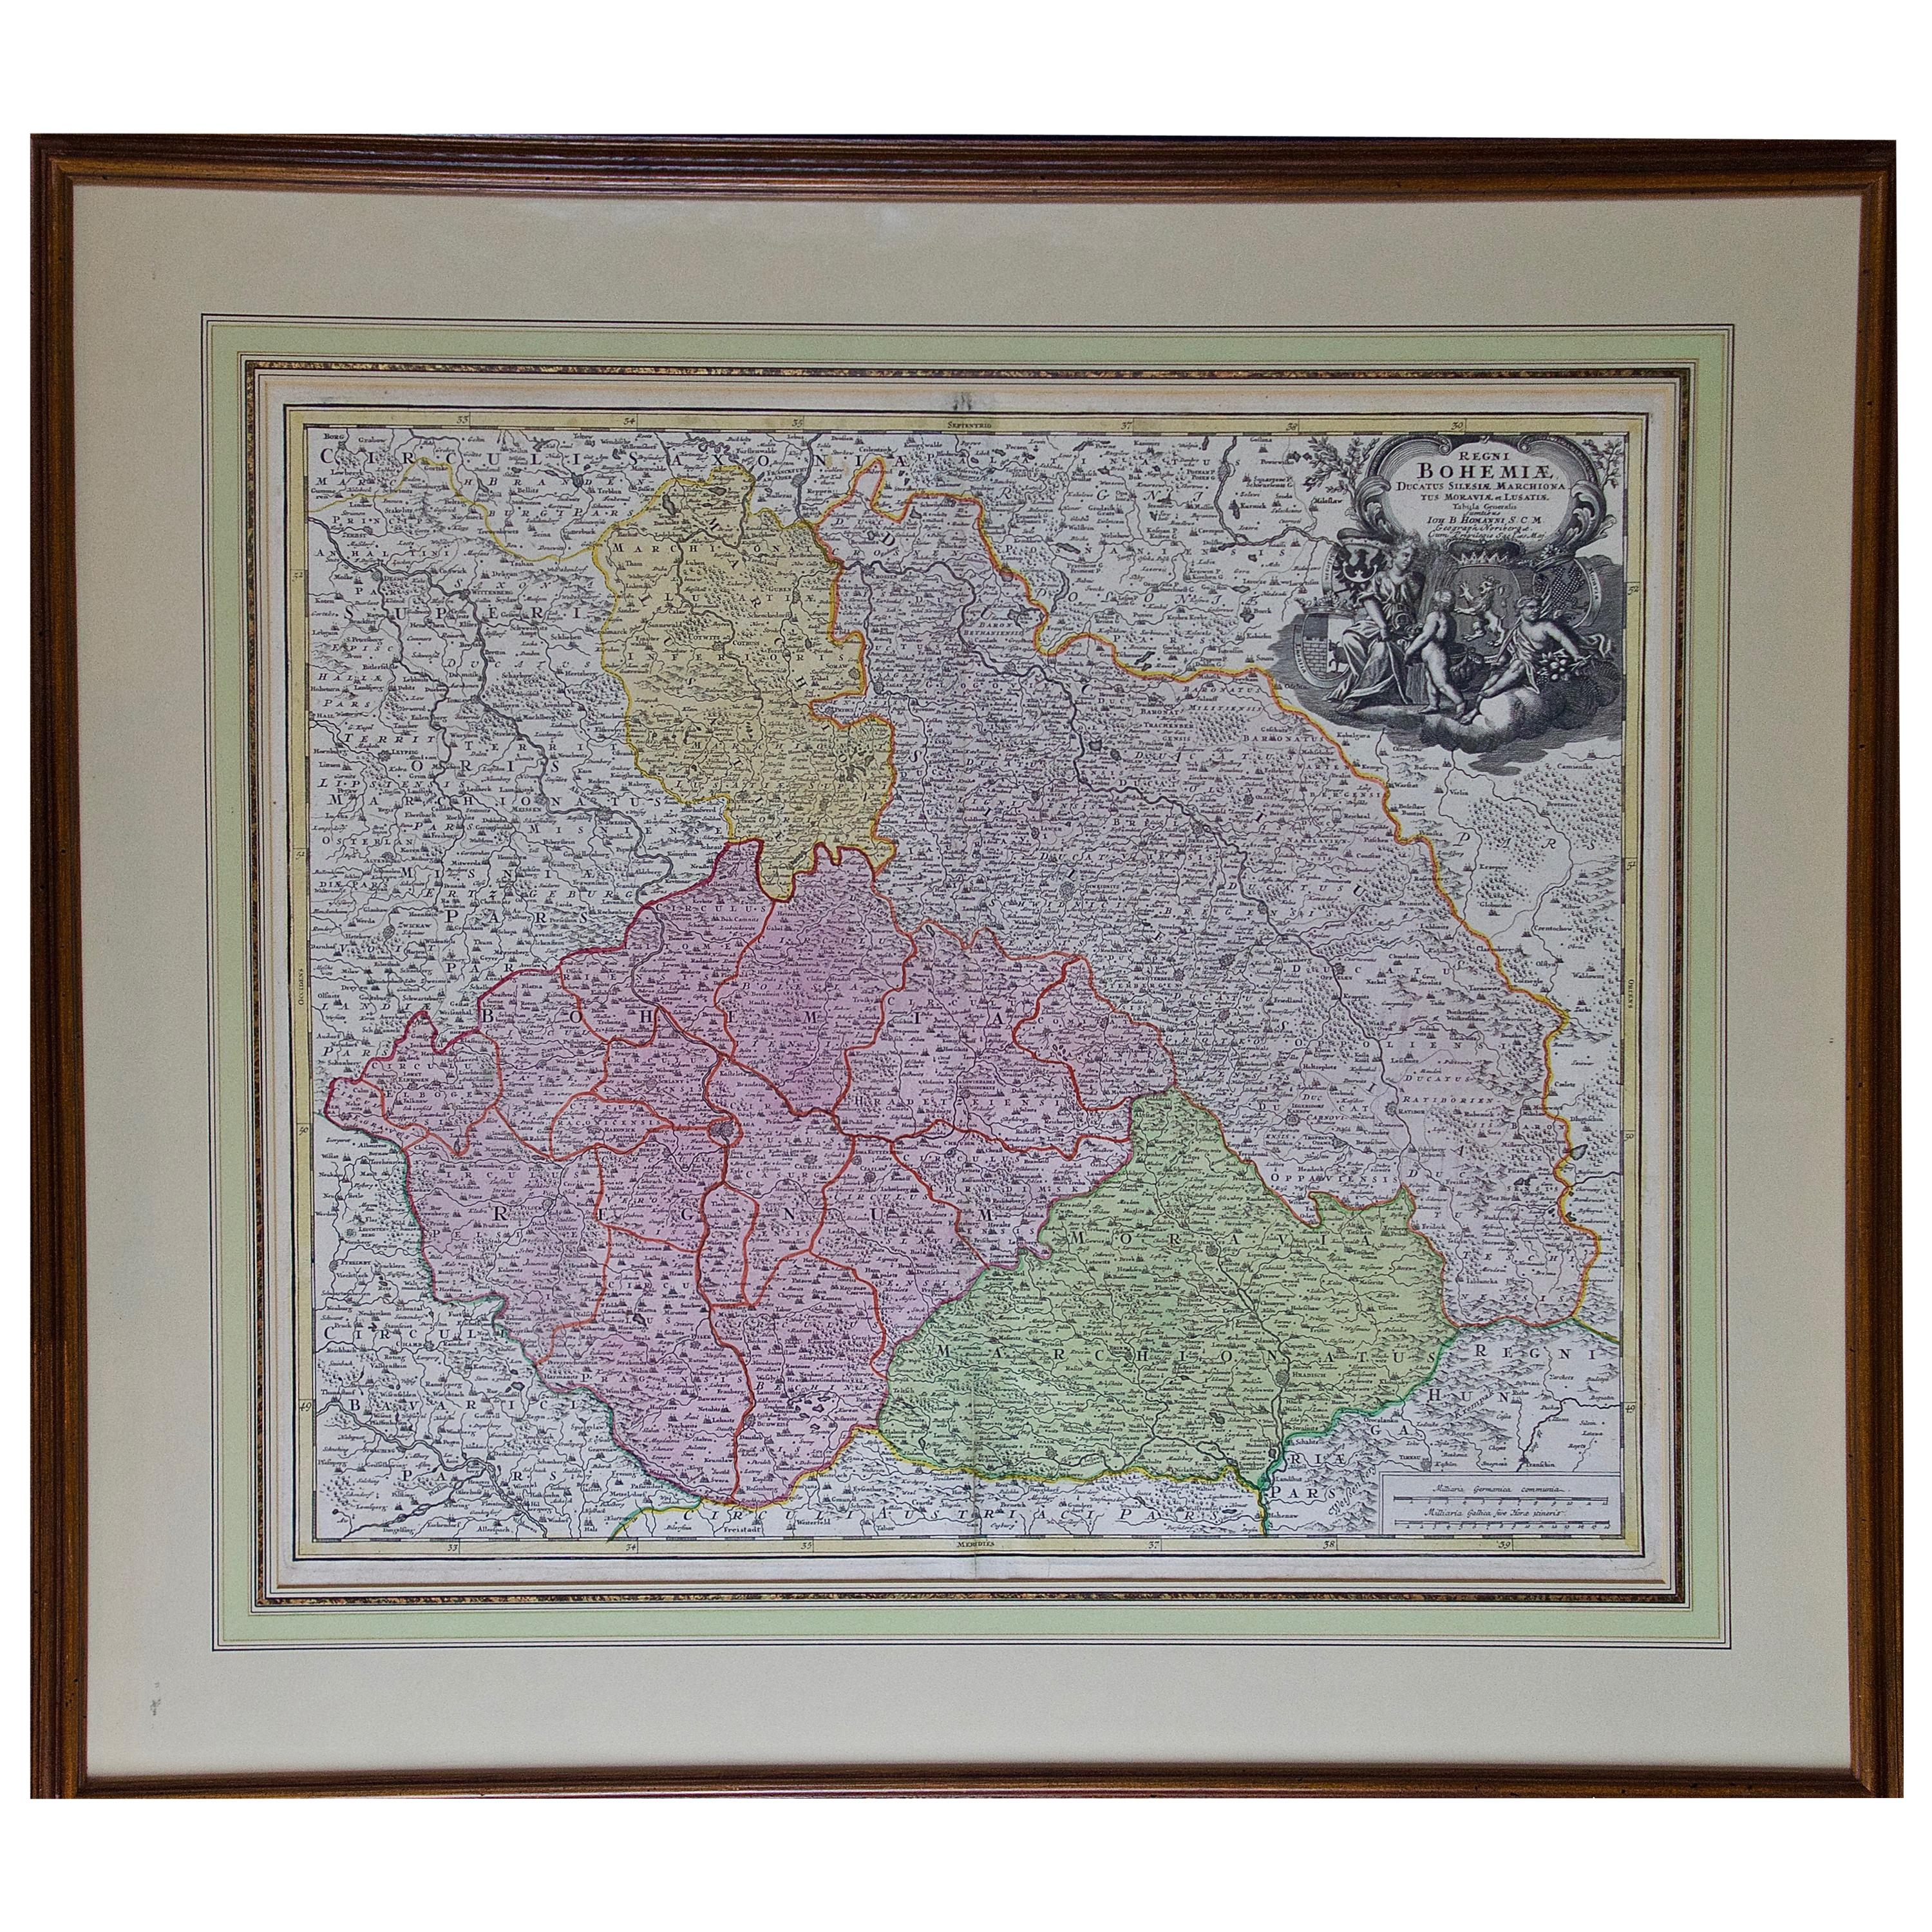 """Hand Colored 18th Century Homann Map """"Bohemiae"""" of the Modern Day Czech Republic"""